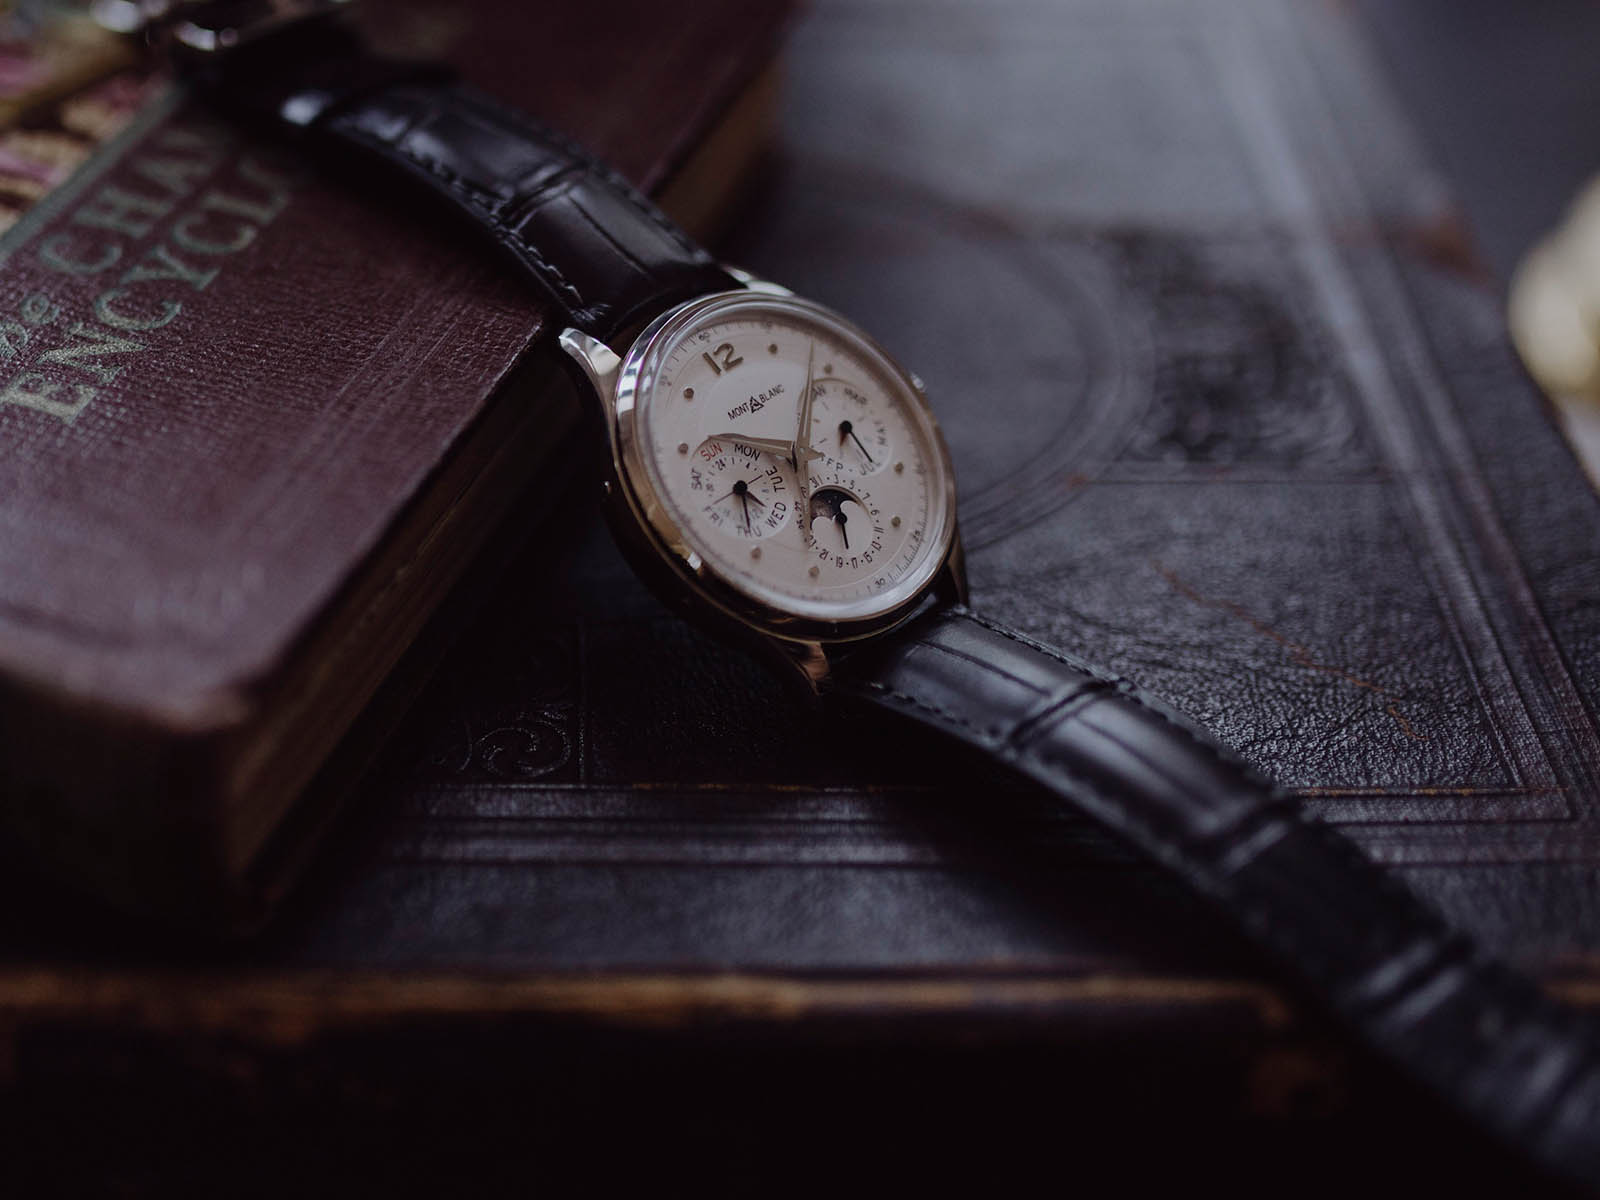 montblanc-heritage-perpetual-calendar-limited-edition-100-2.jpg